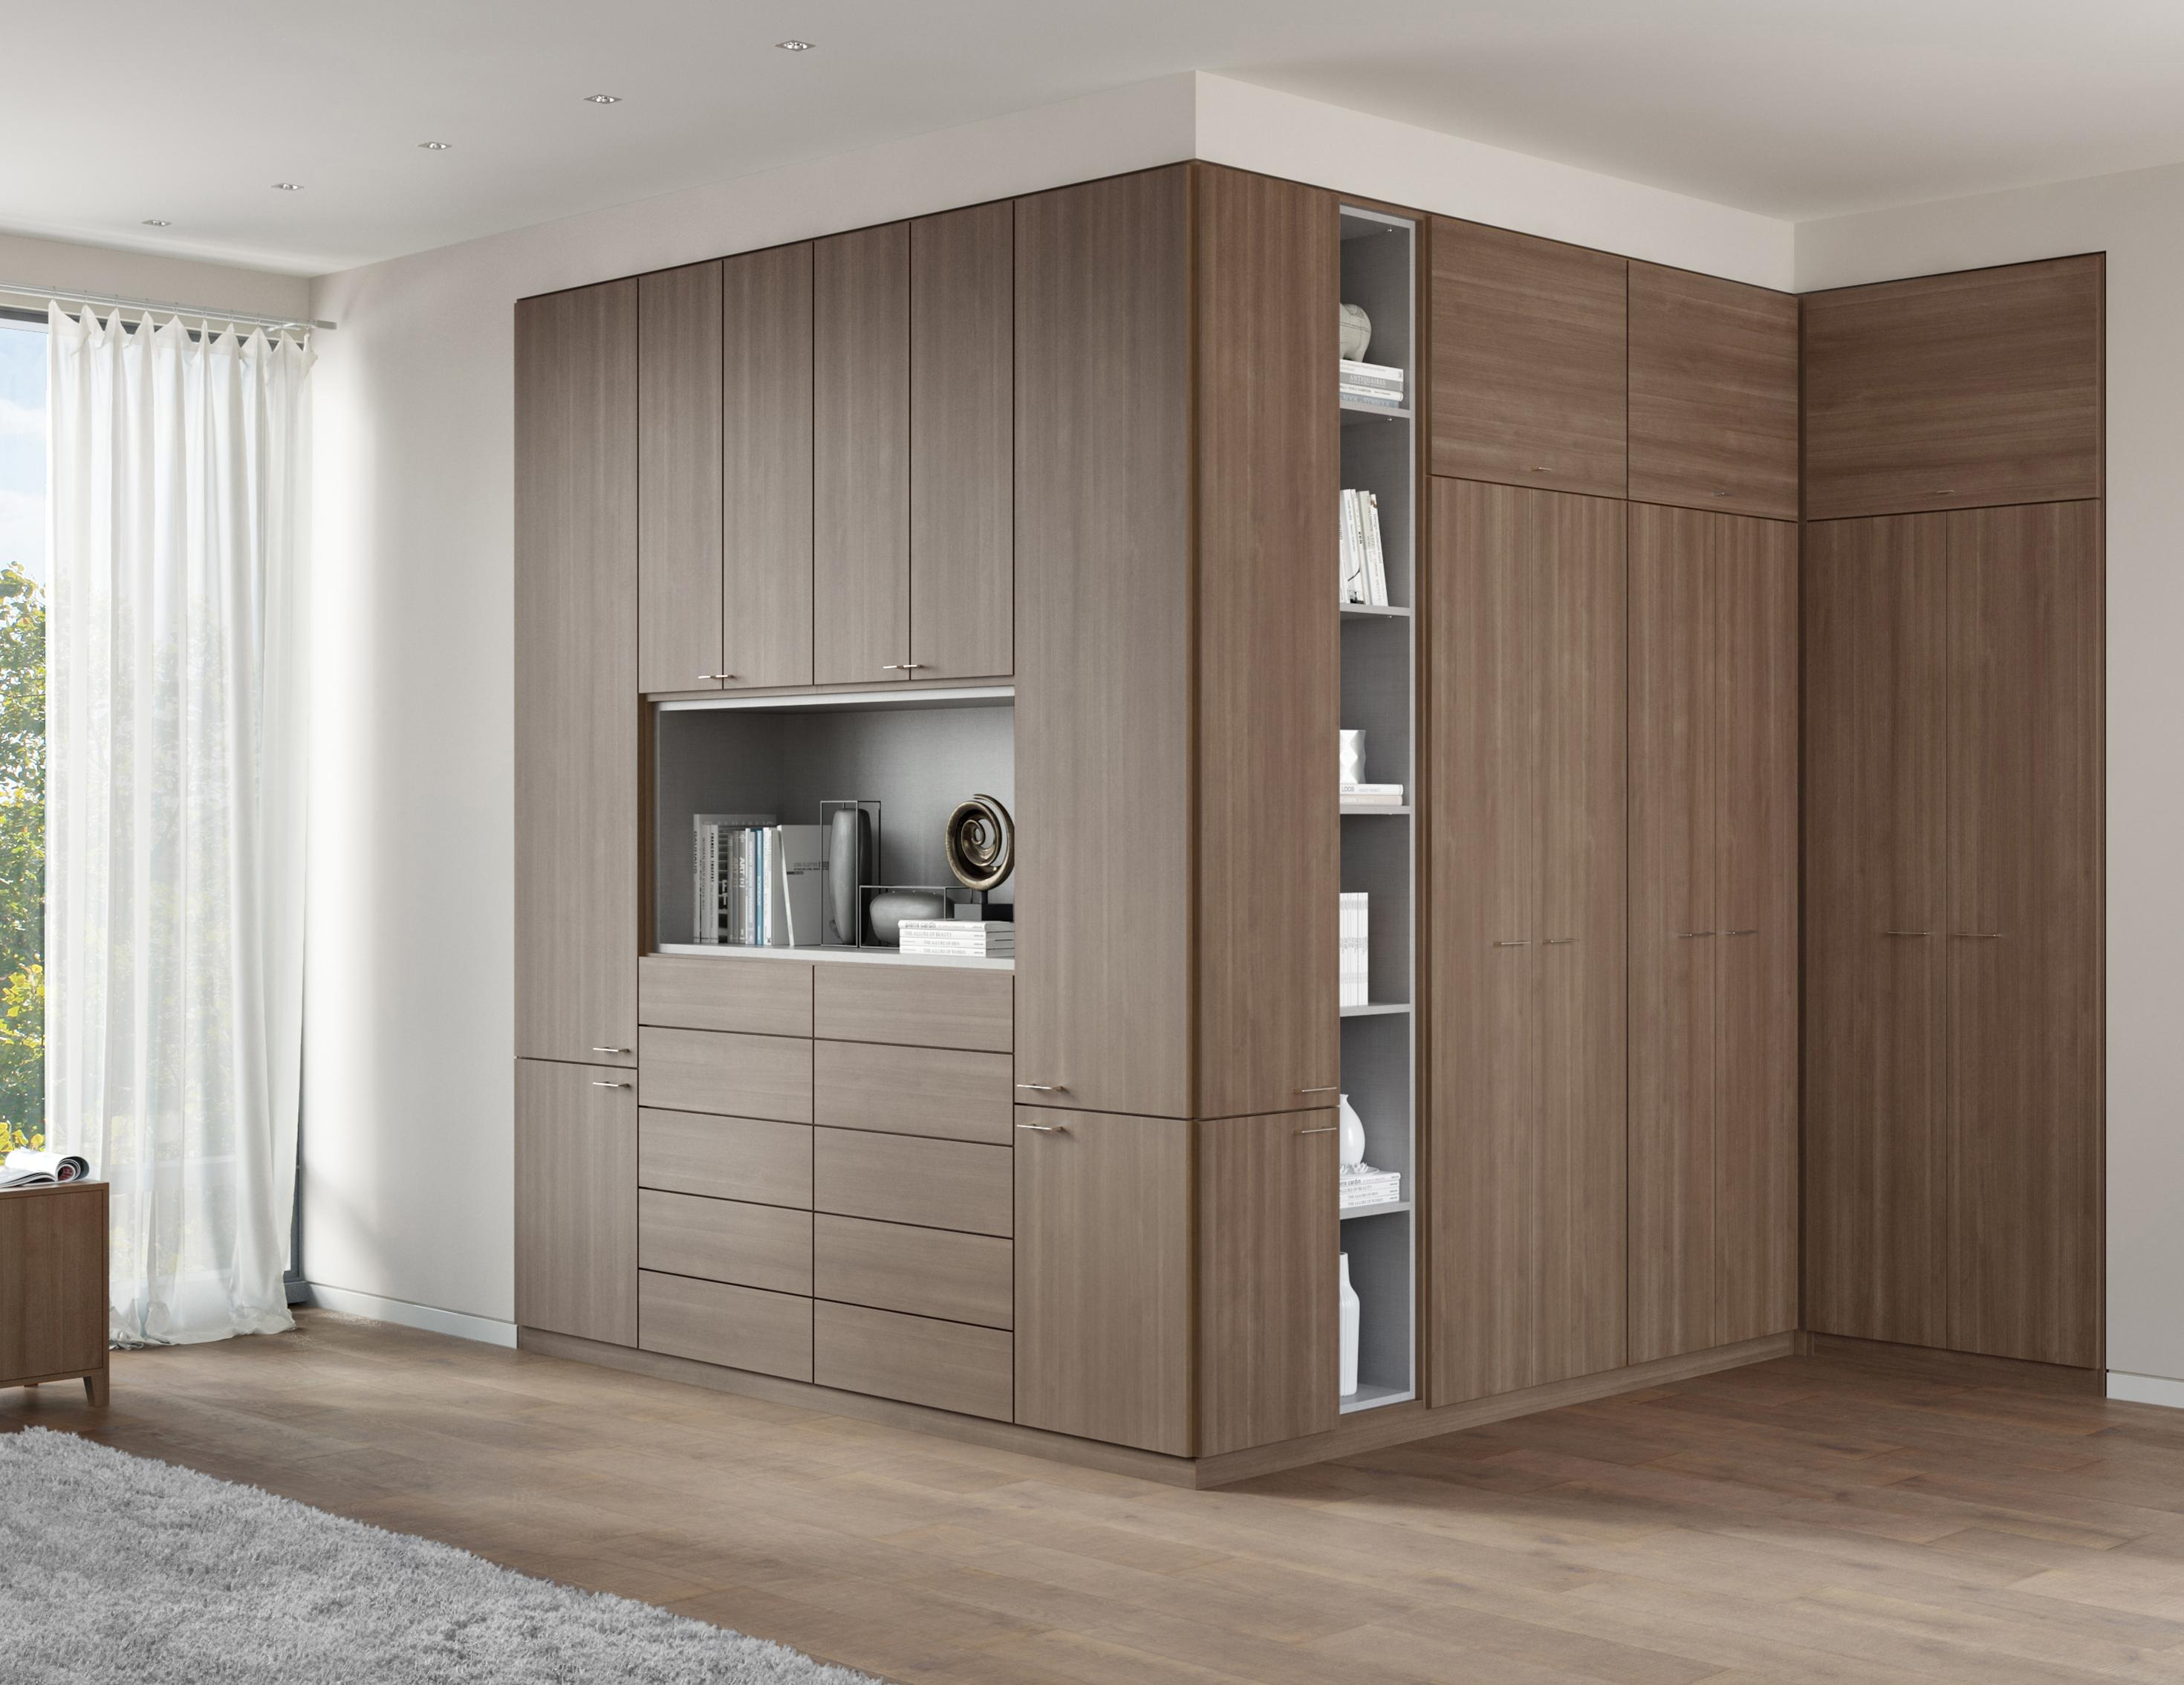 When It Comes To Your Storage Needs, Nothing Is Better Than Choosing California  Closets Of Montreal.